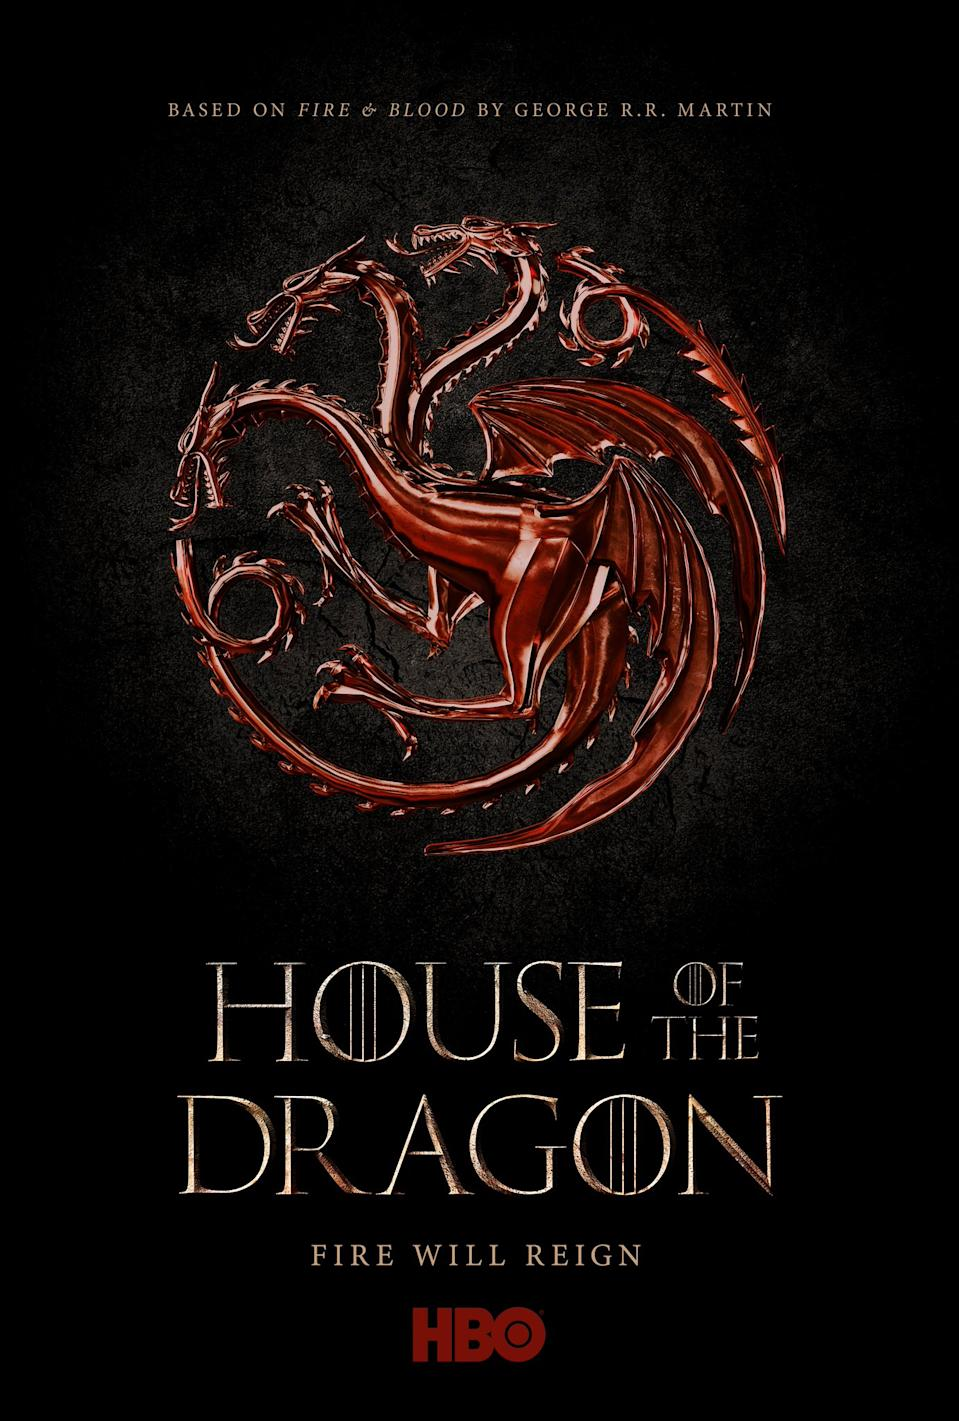 HBO's teaser poster for the 'Game of Thrones' prequel series, 'House of the Dragon' (Photo: HBO)